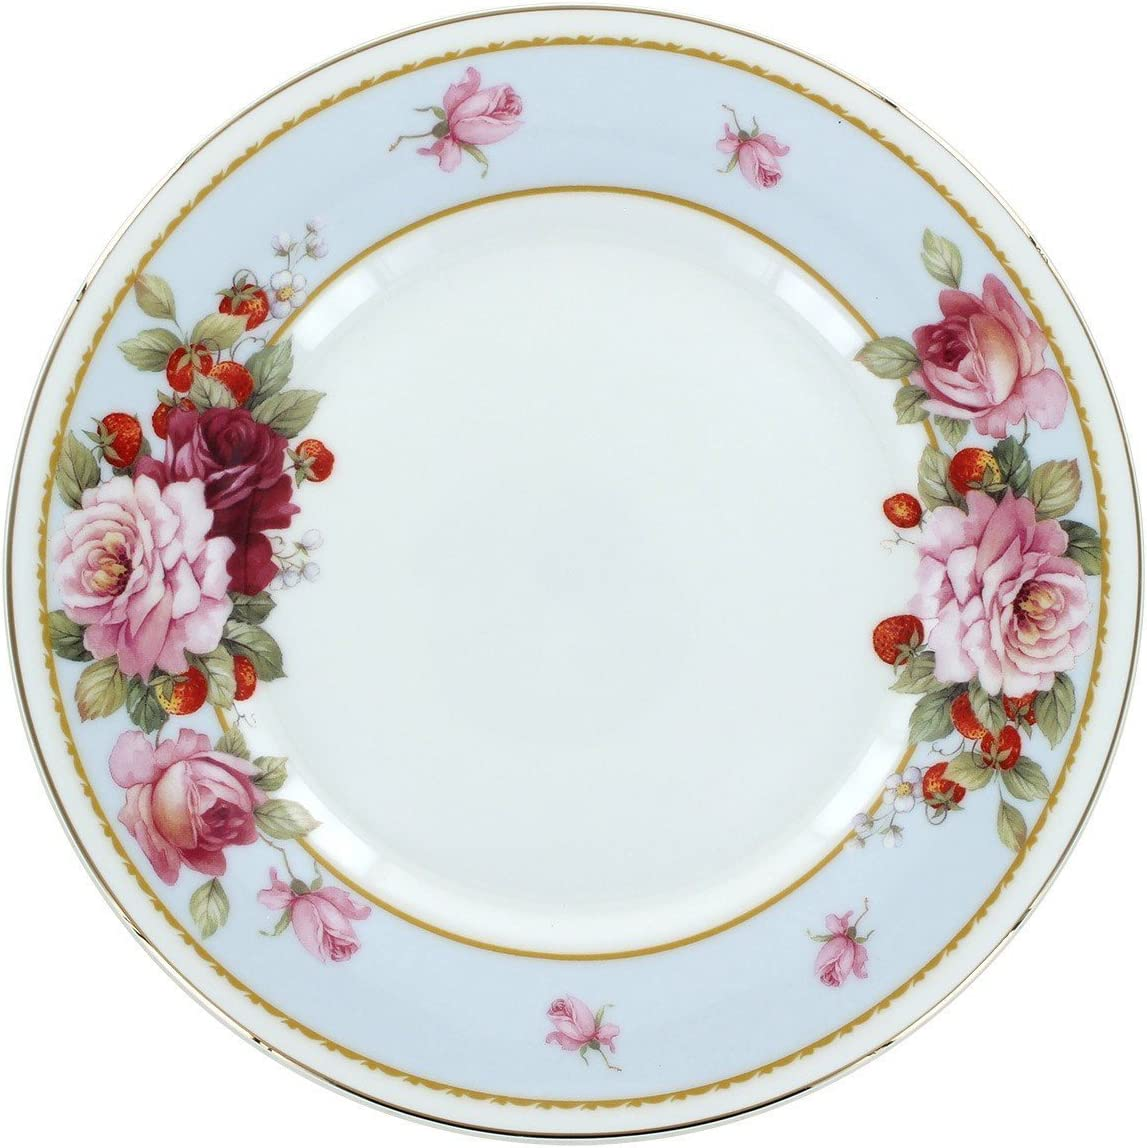 Peony and Strawberry Blue Bone shopping China Plates Super beauty product restock quality top! - 4 Dessert Set of